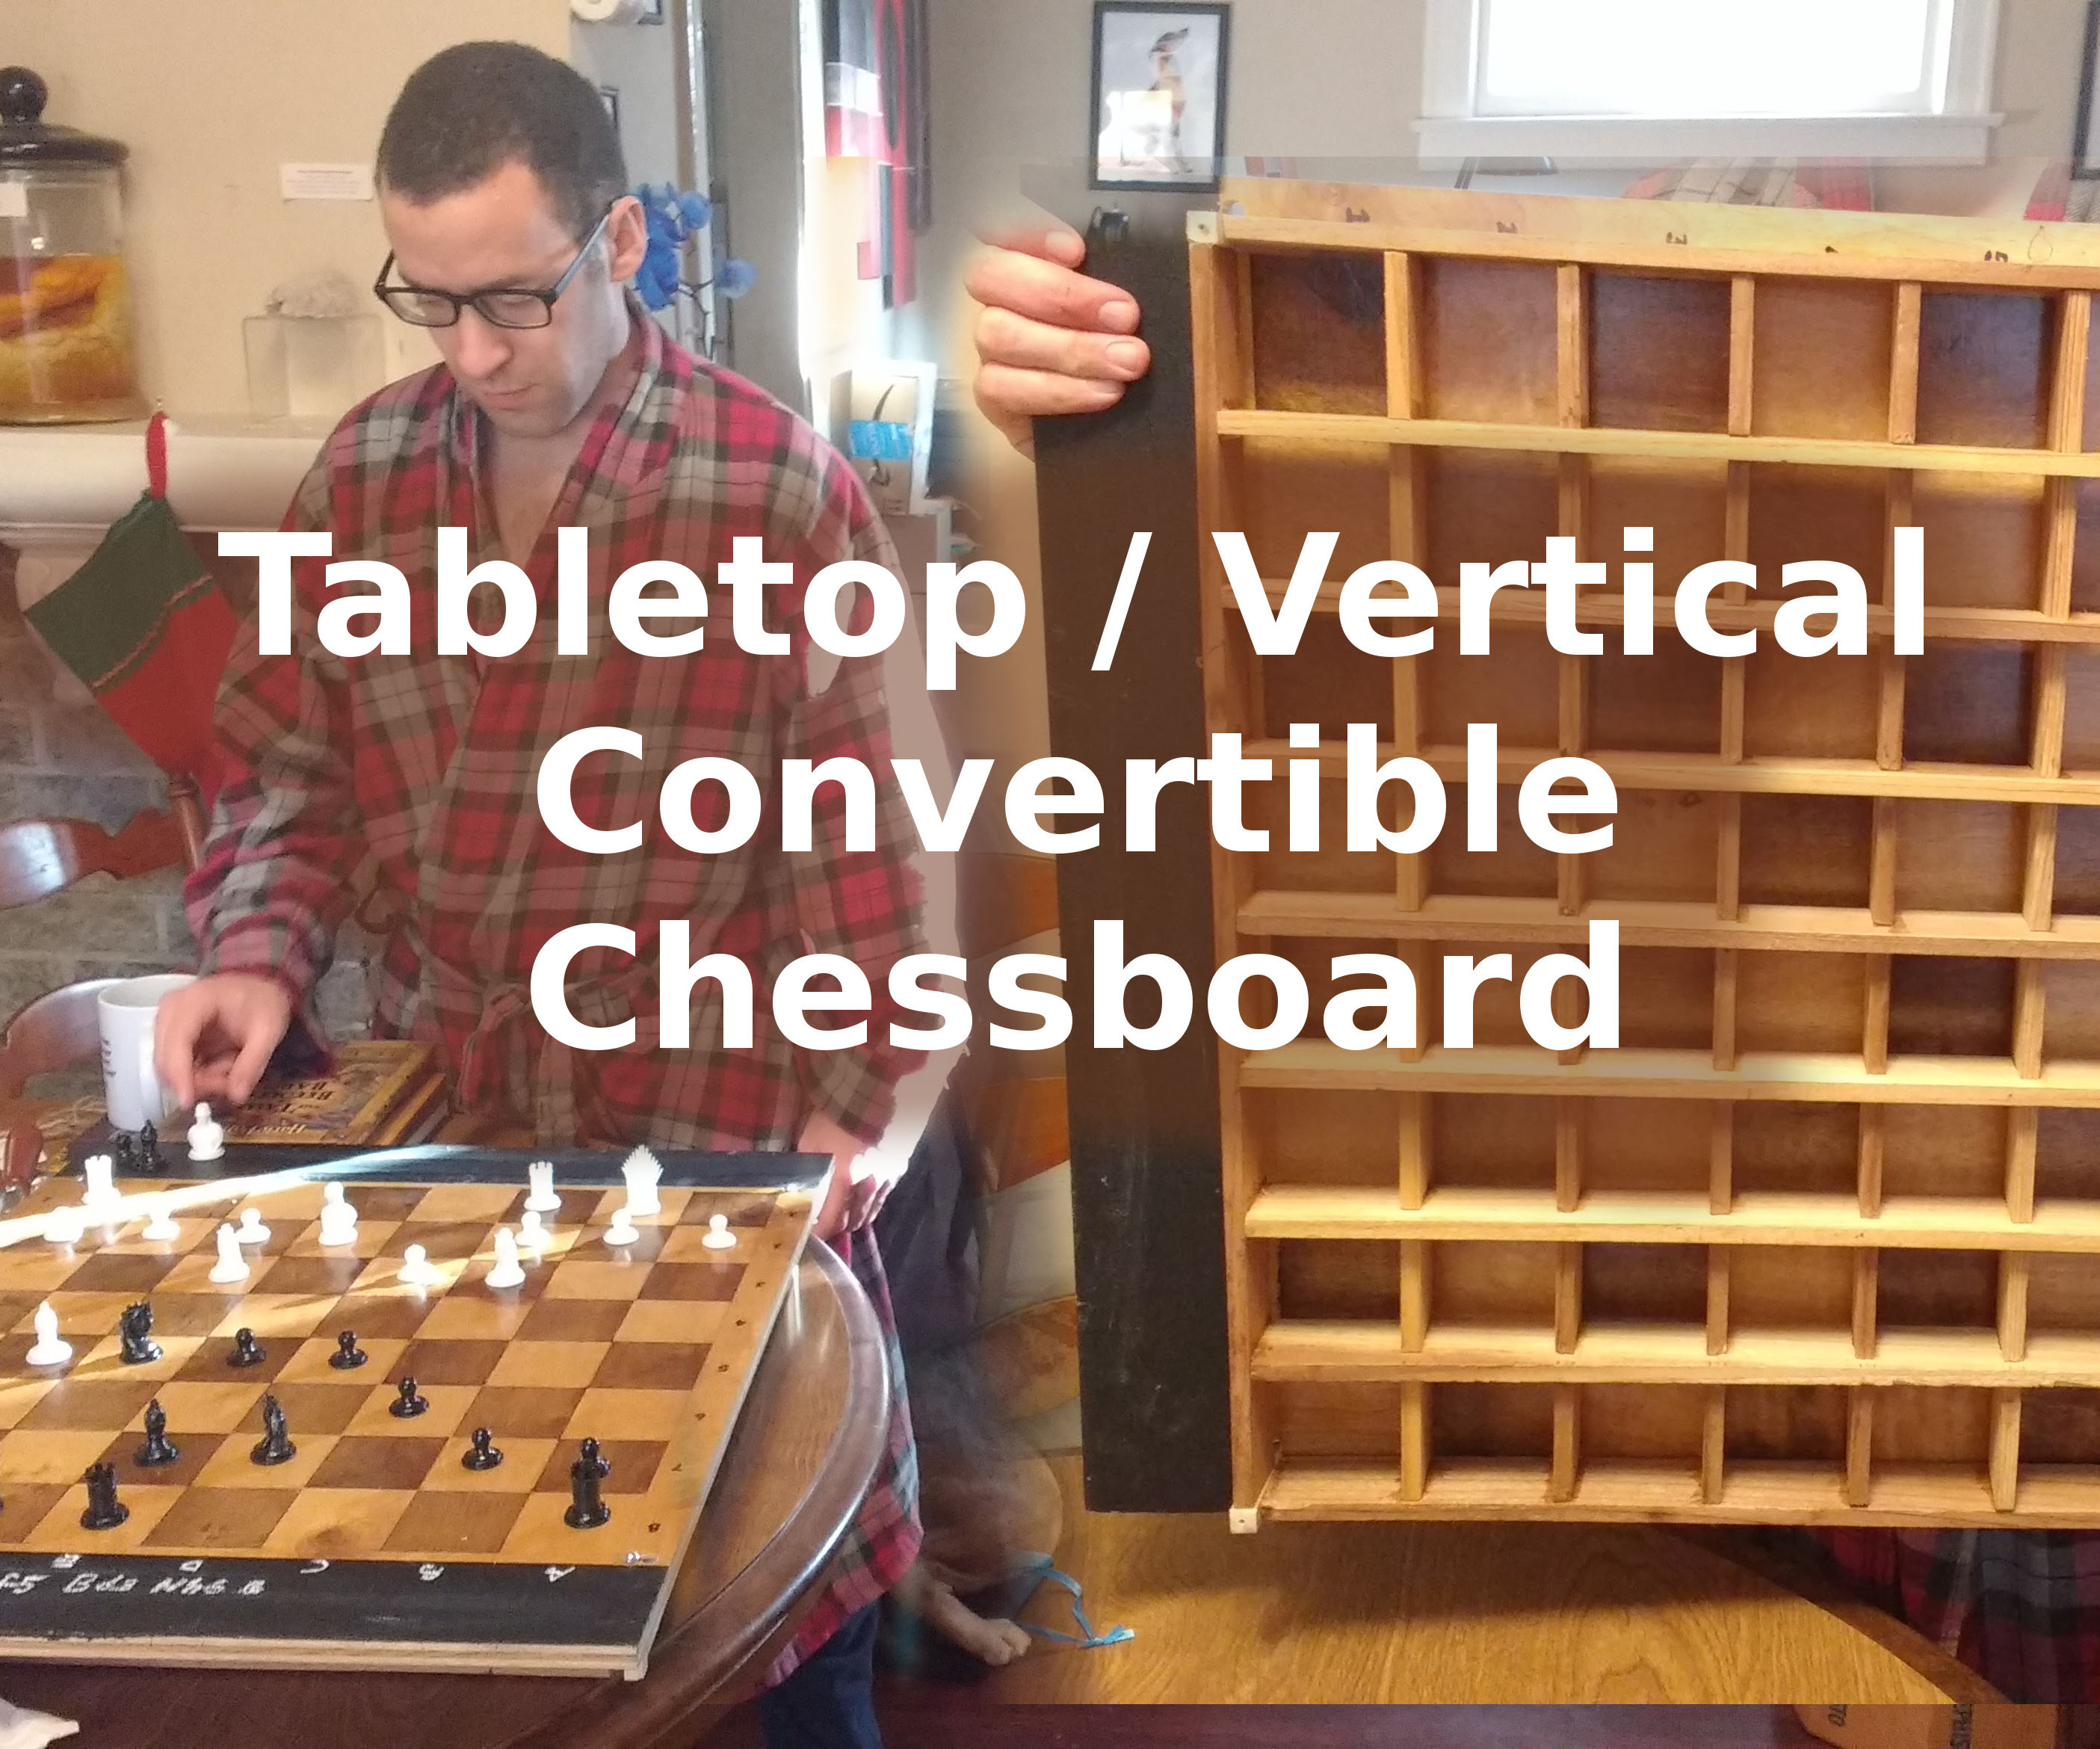 Tabletop-to-vertical Convertible Chessboard